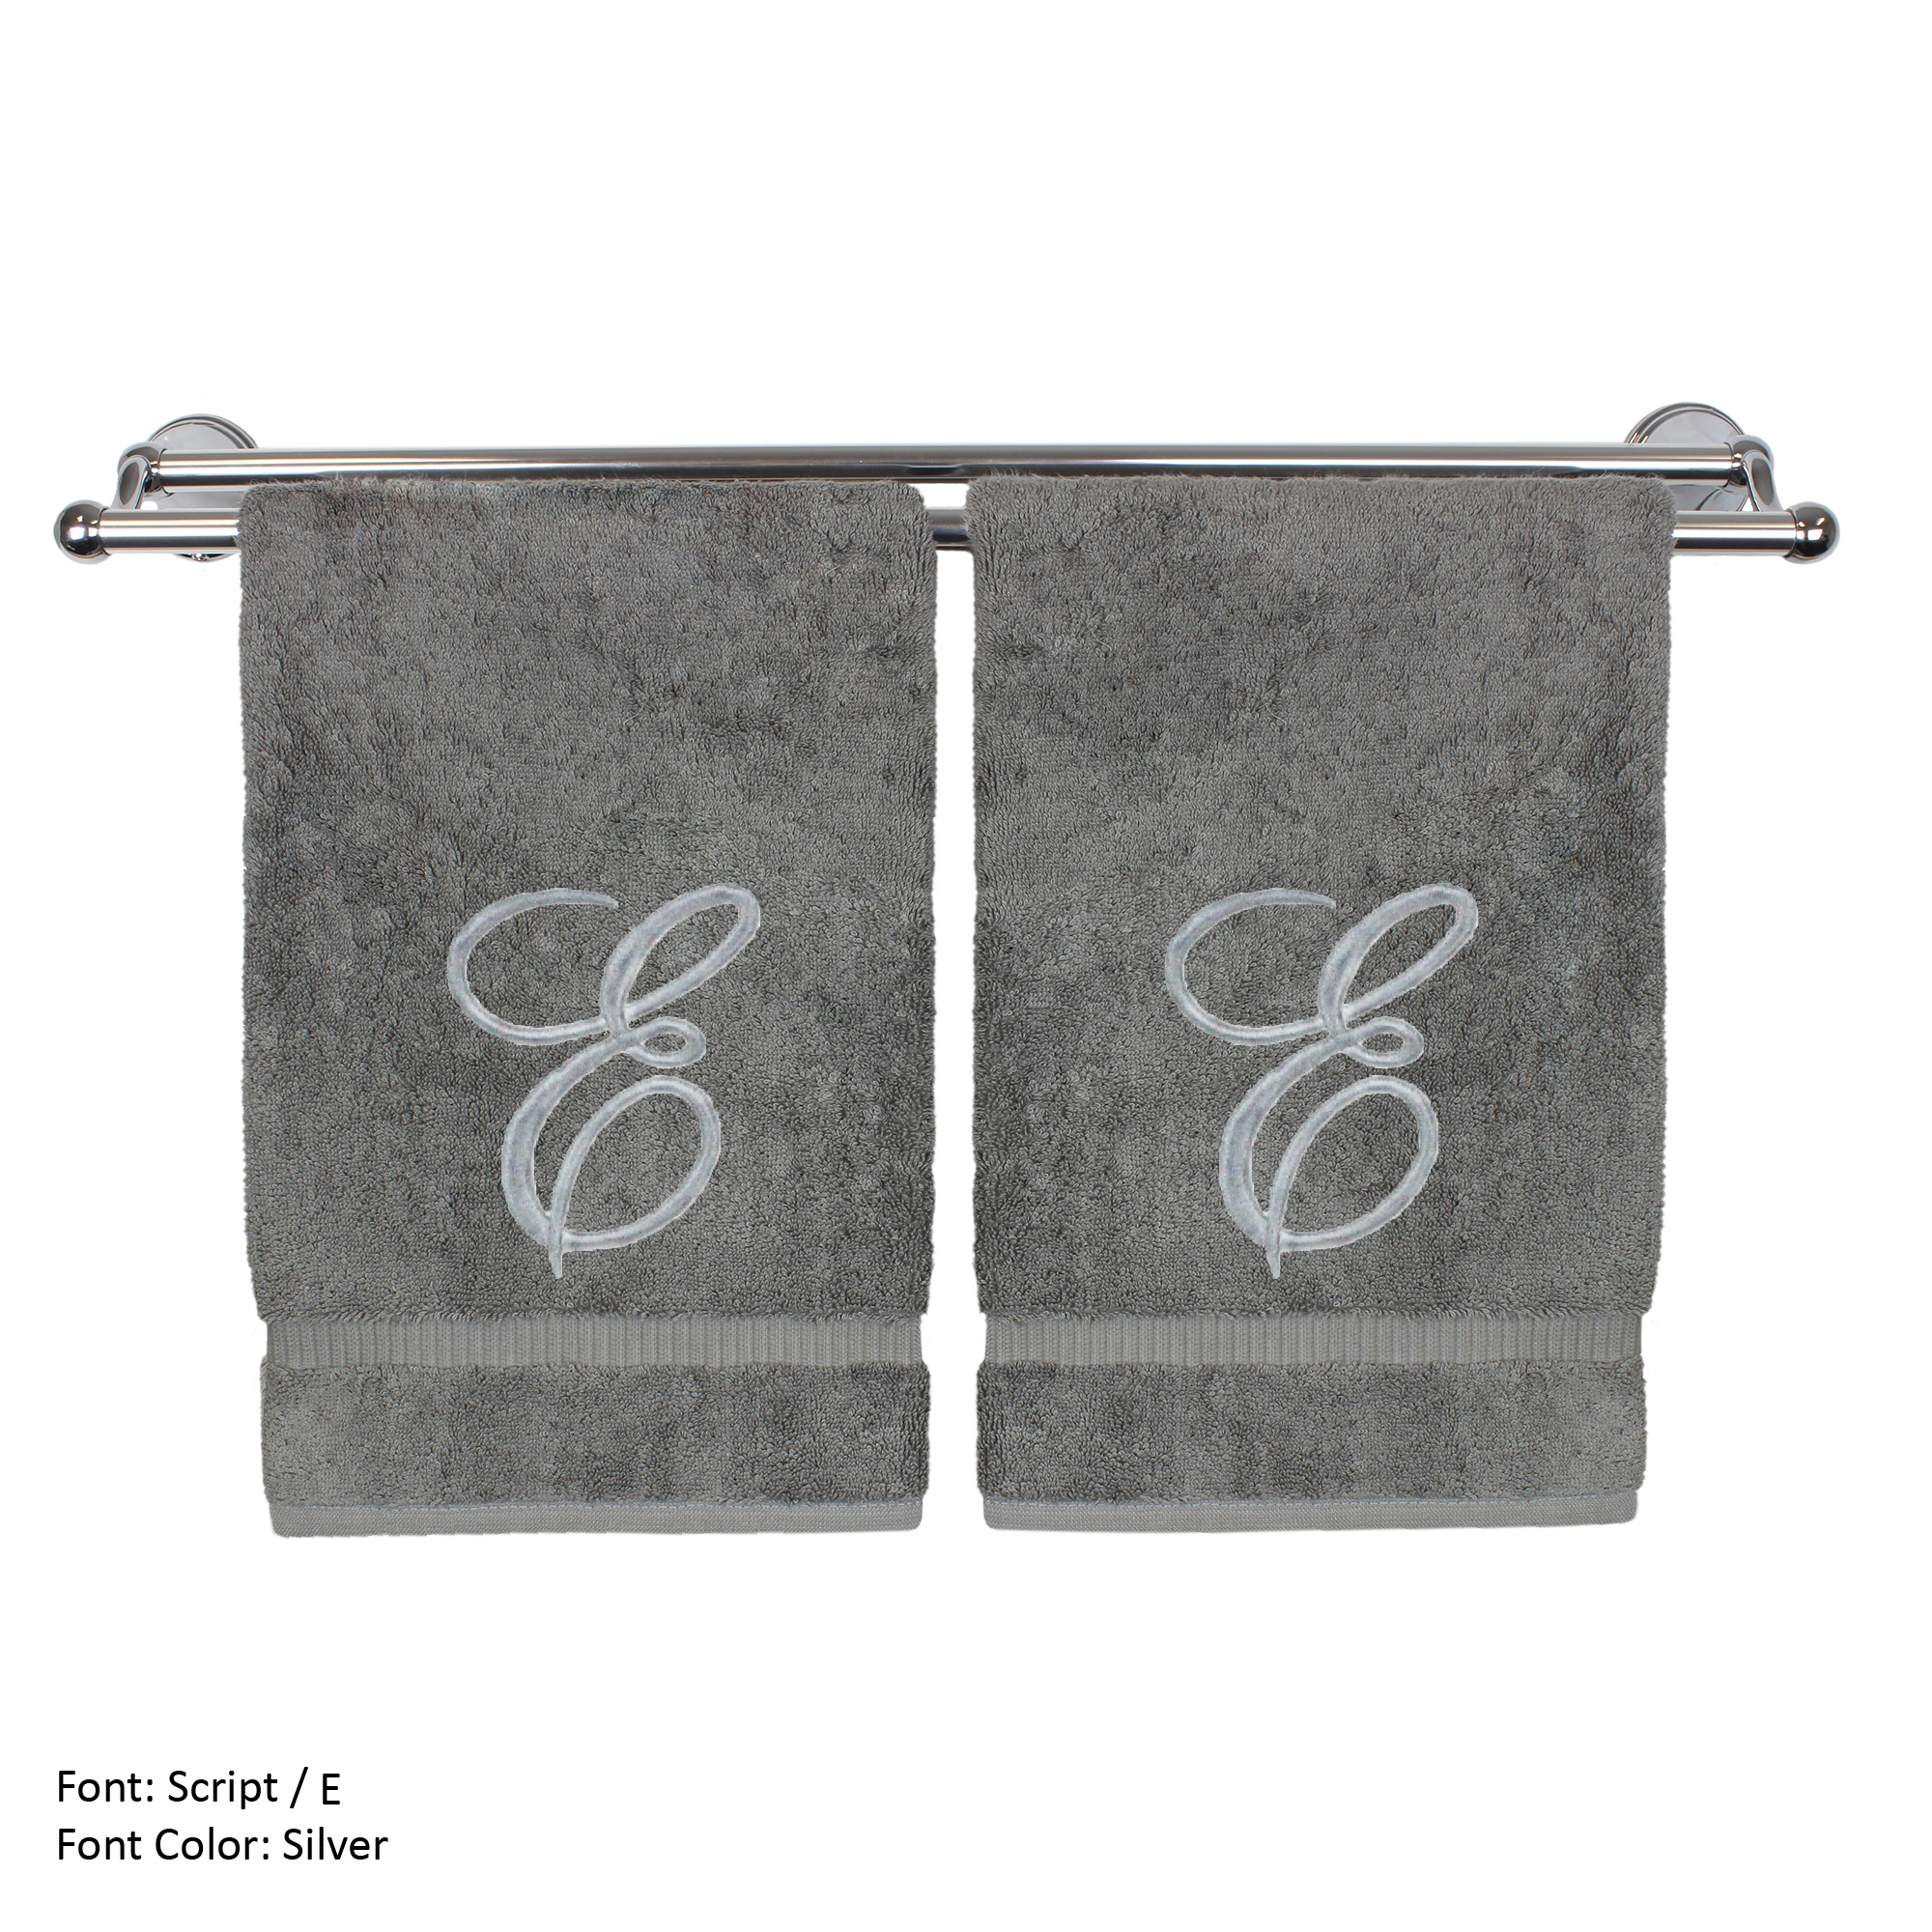 Monogrammed Washcloth Towel, Personalized Gift, 13x13 Inches - Set of 2 - Silver Script Embroidered Towel - Extra Absorbent 100% Turkish Cotton - Soft Terry Finish - Initial E Gray